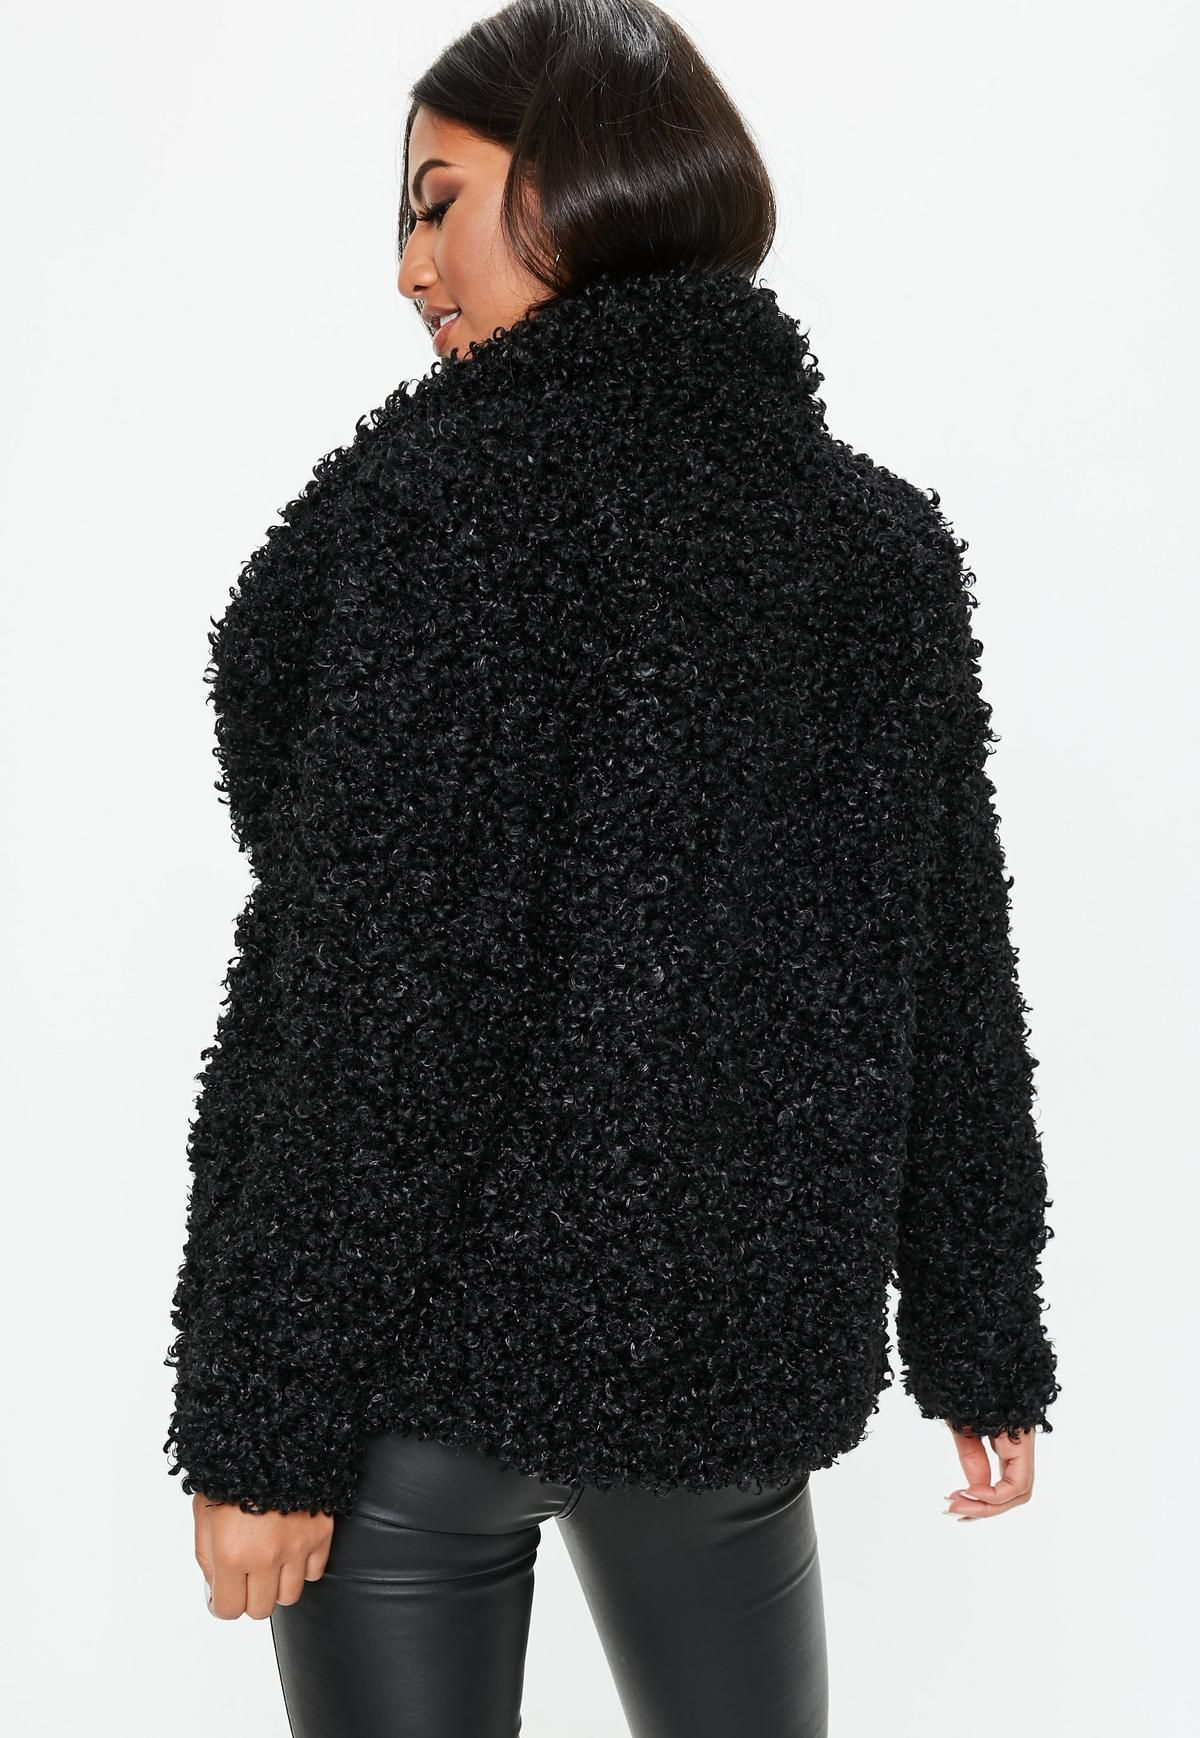 e8cd425fbb1f Black Shaggy Waterfall Faux Fur Jacket